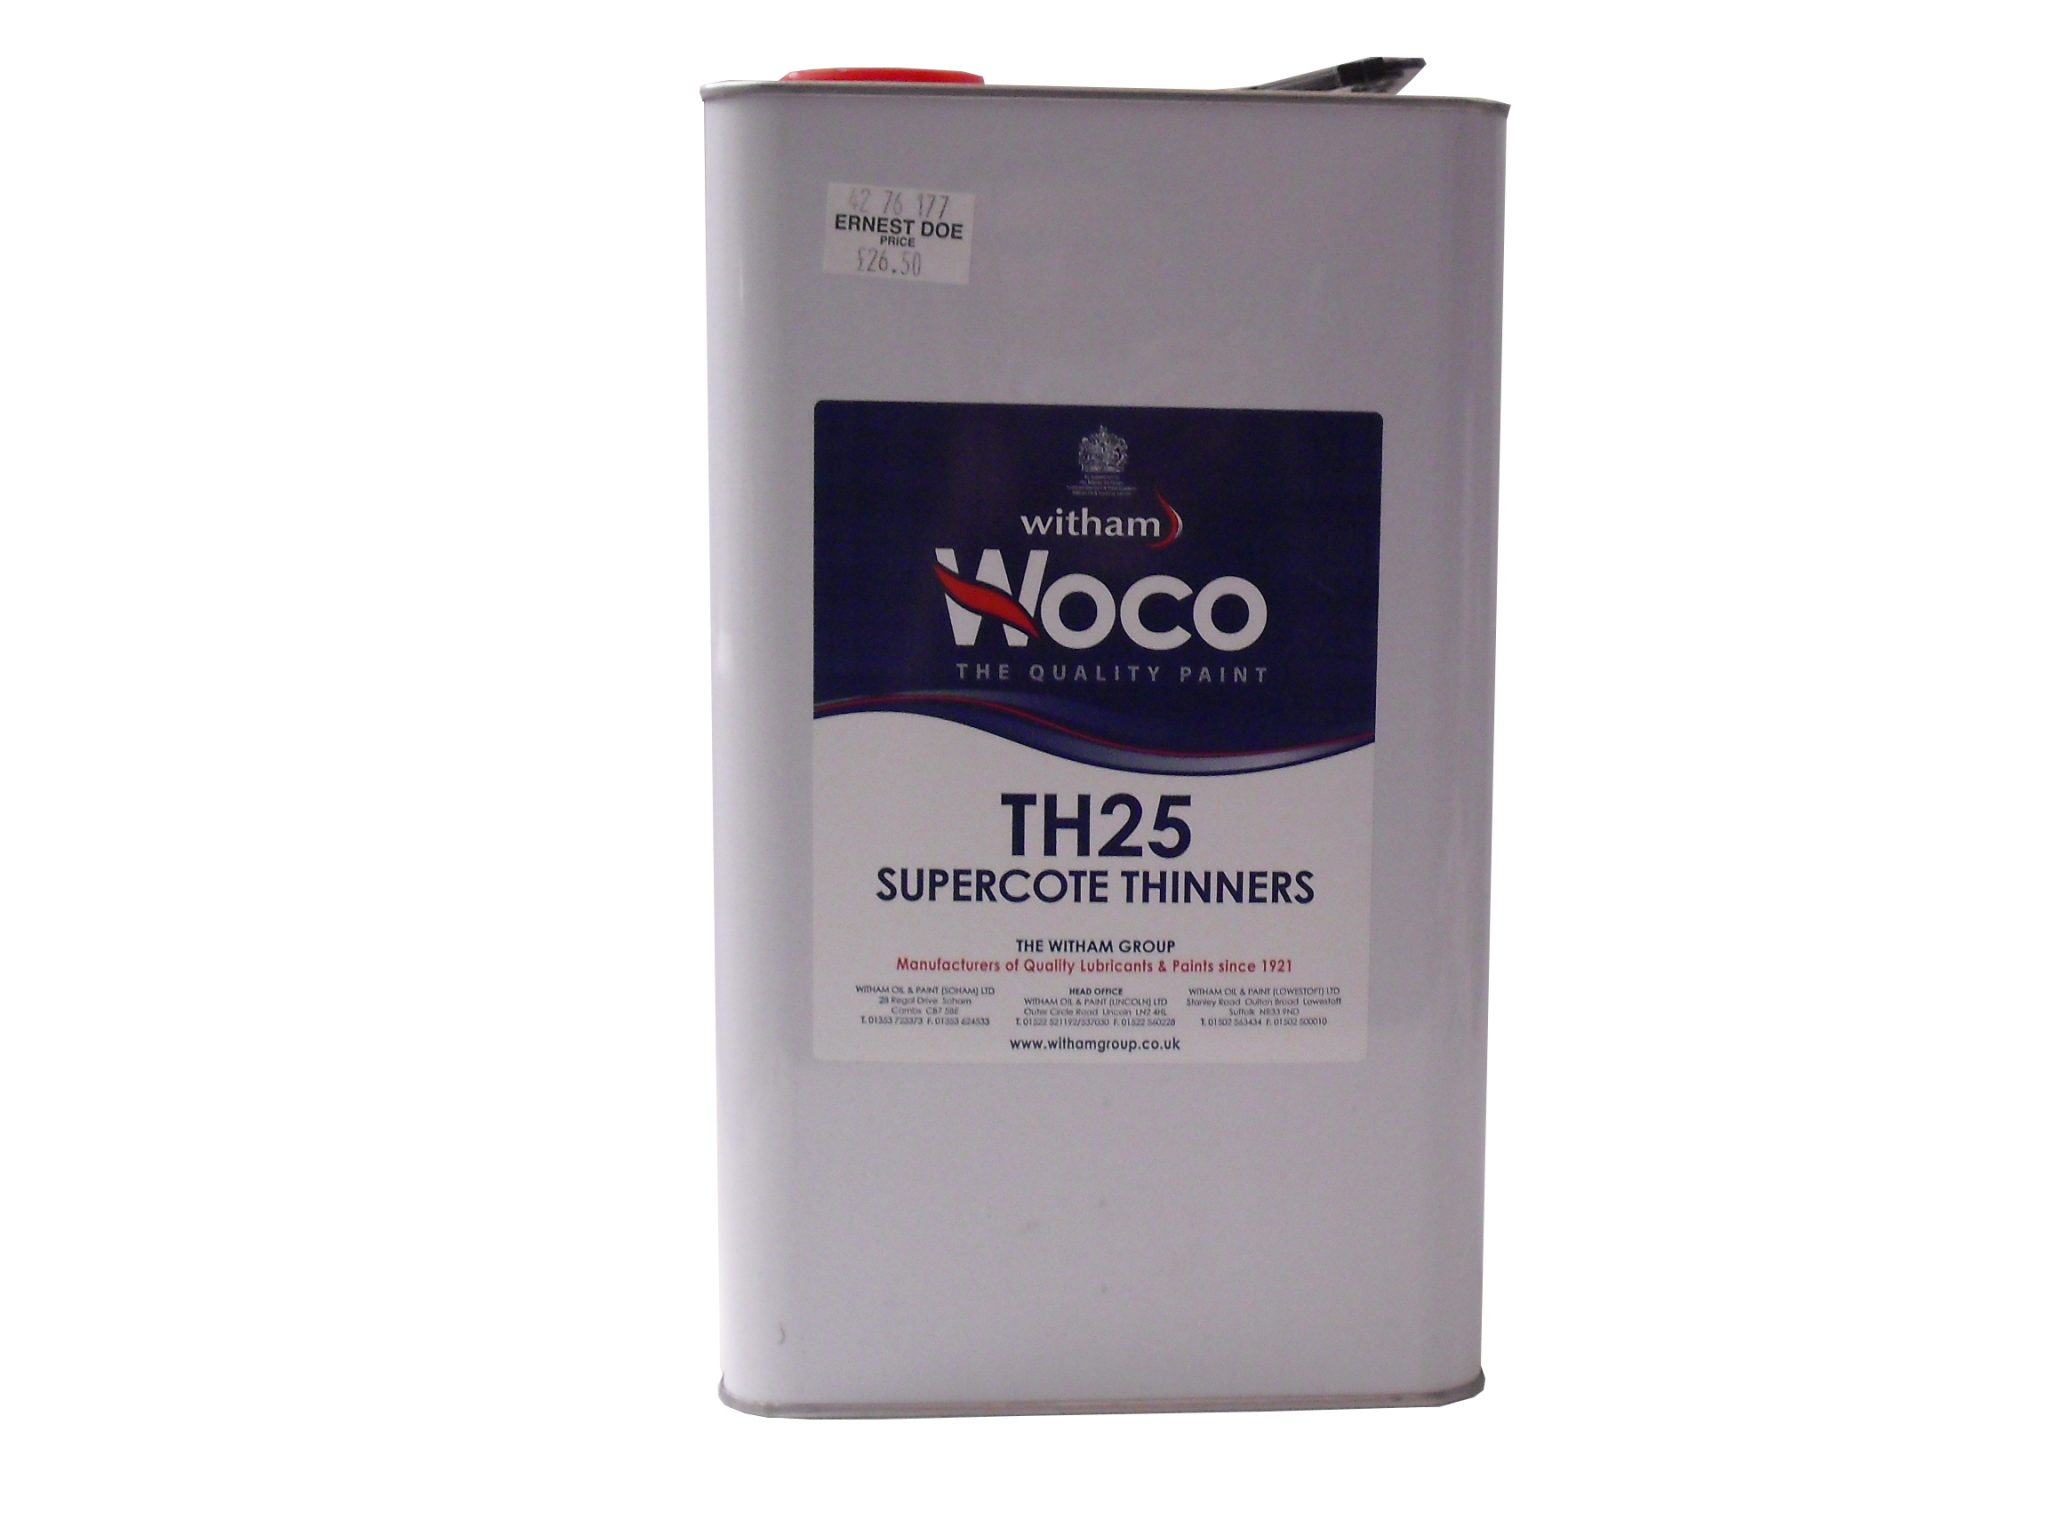 Woco TH25 Supercote Thinners